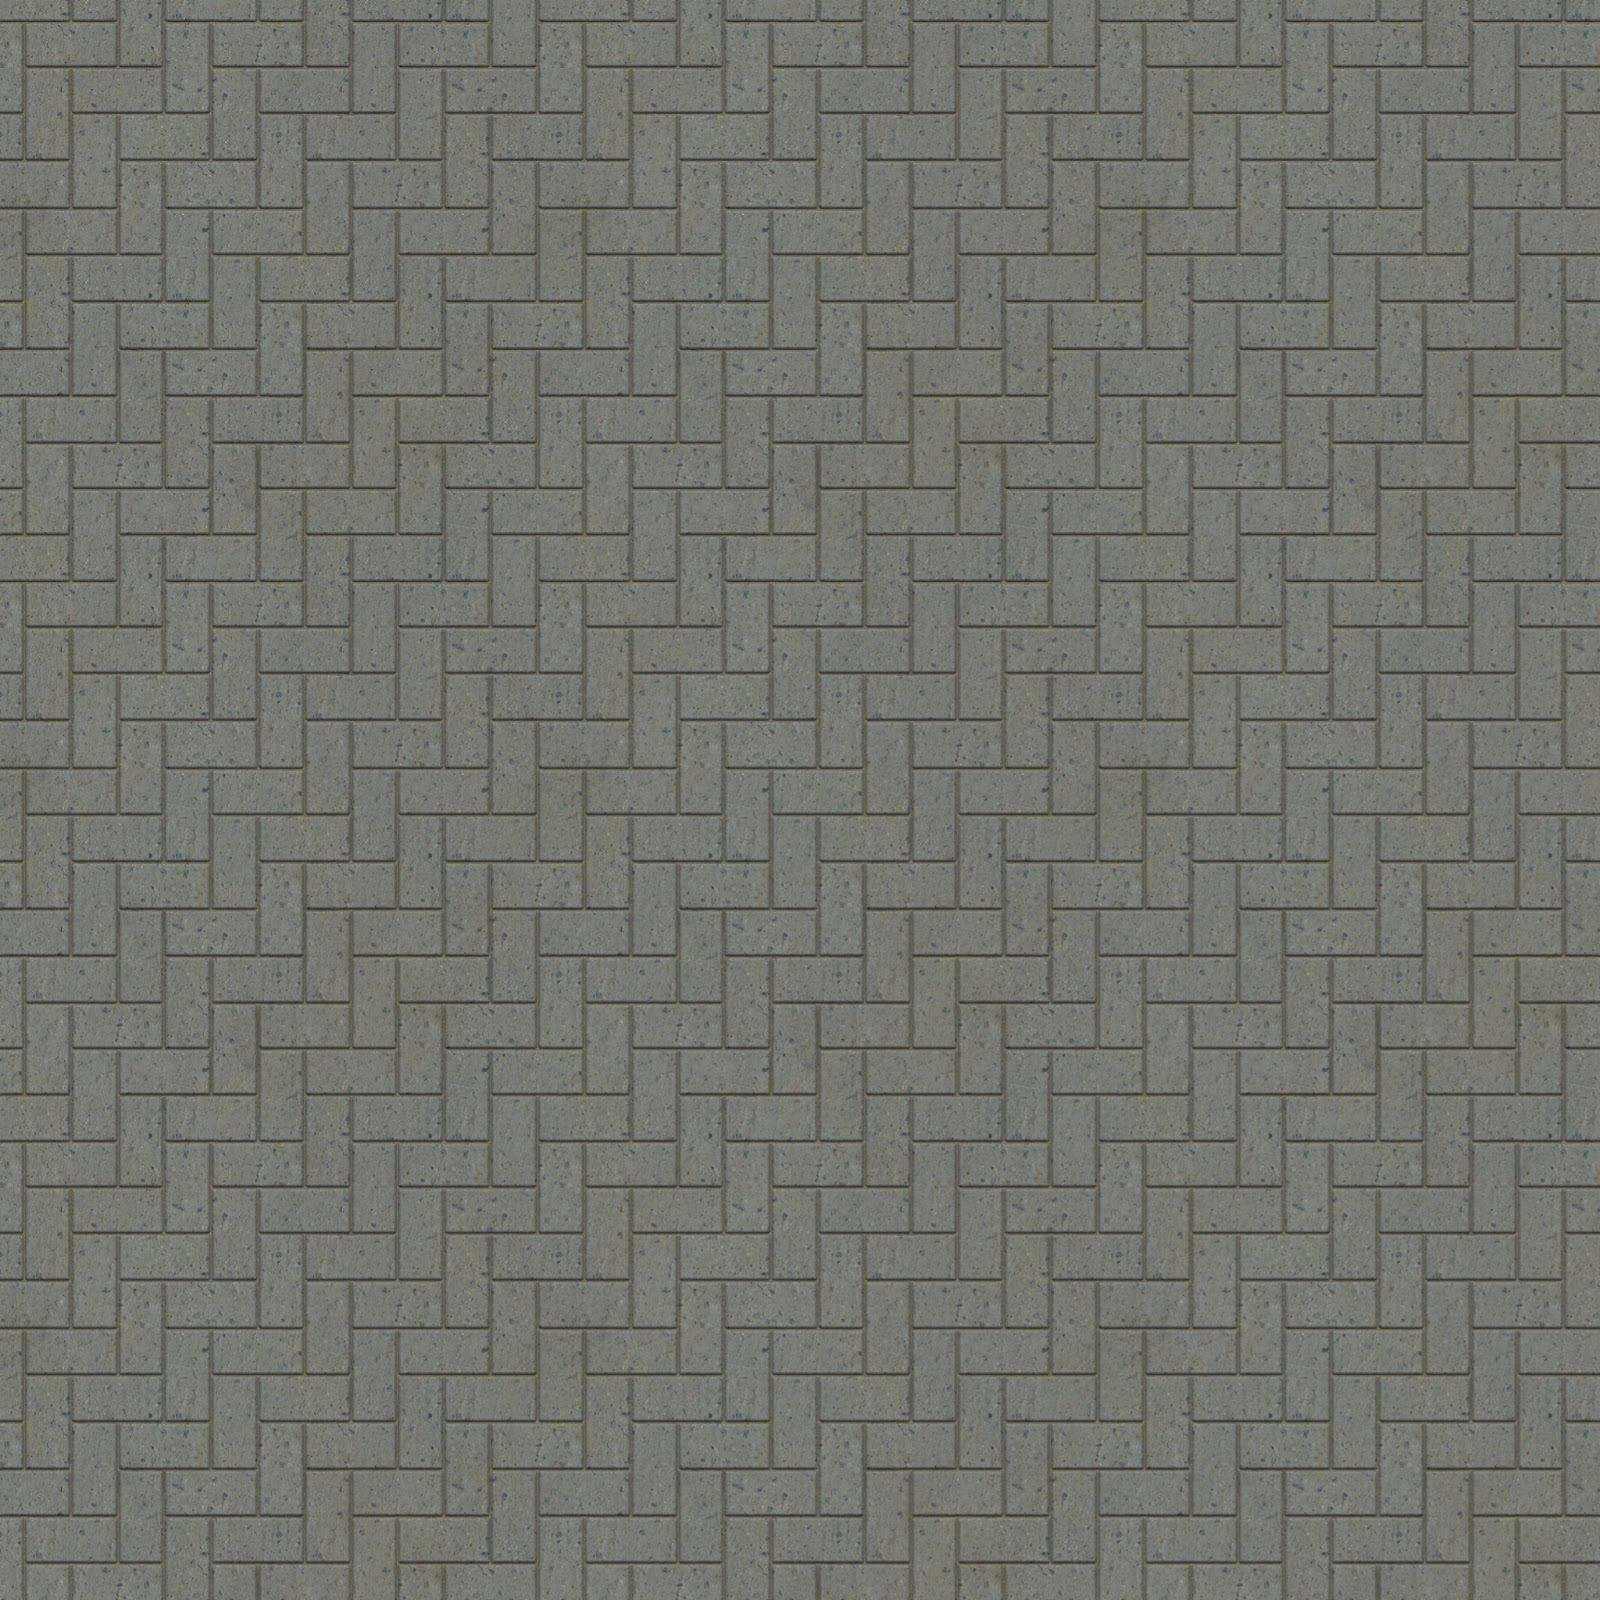 Tiling example of how the texture tiles seamlessly